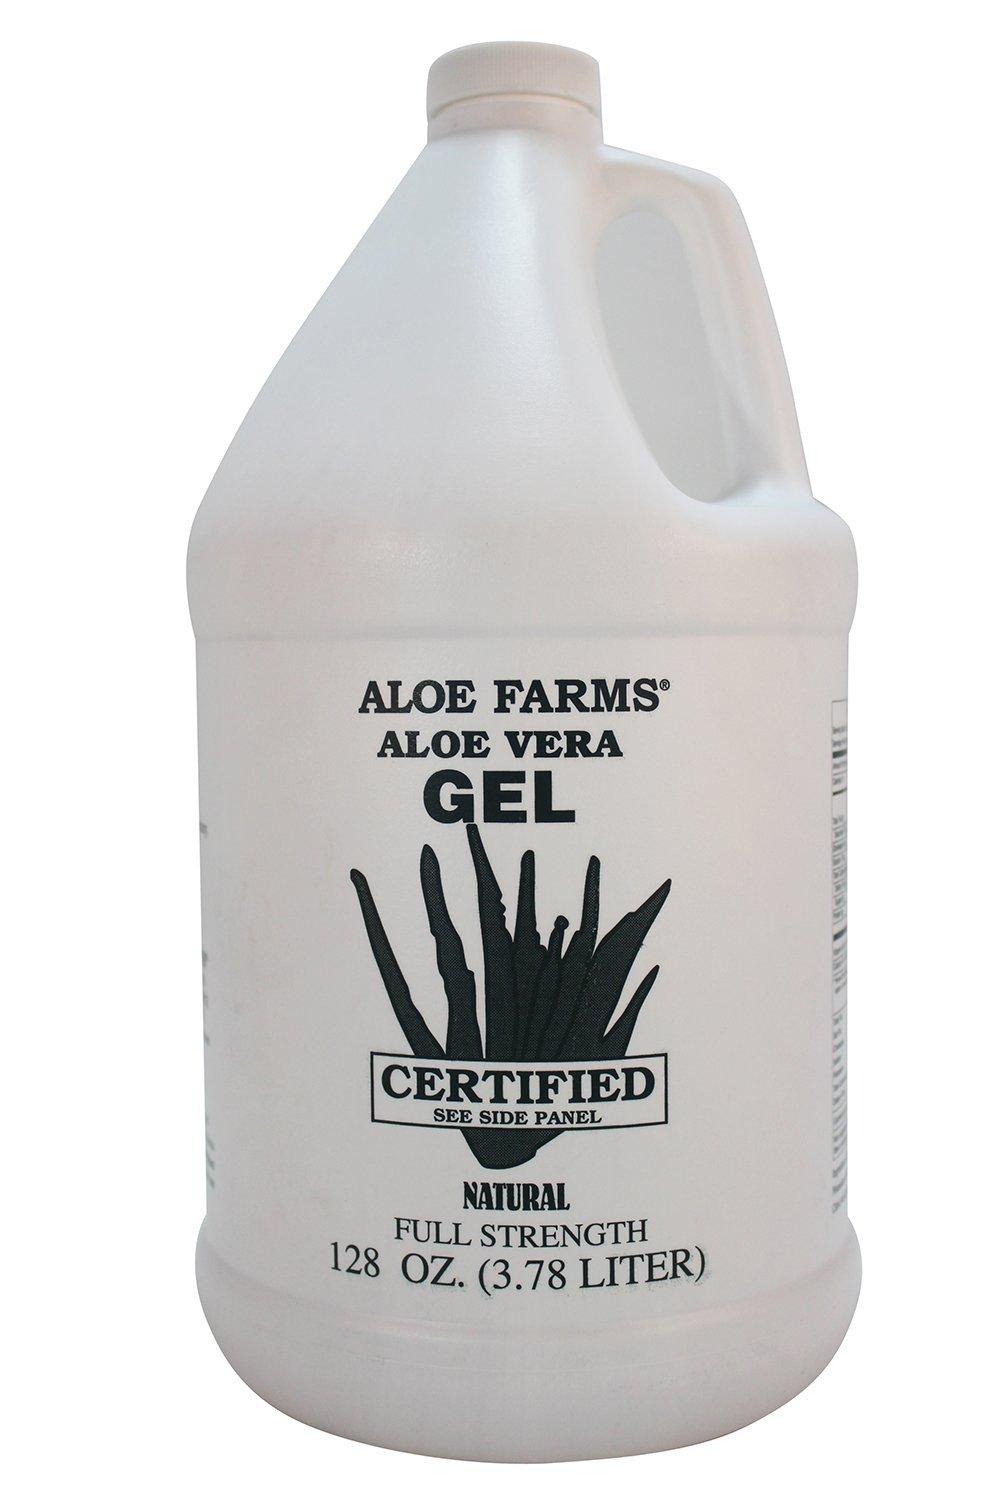 Aloe Farms Aloe Vera Gel Organic, 128-Ounce